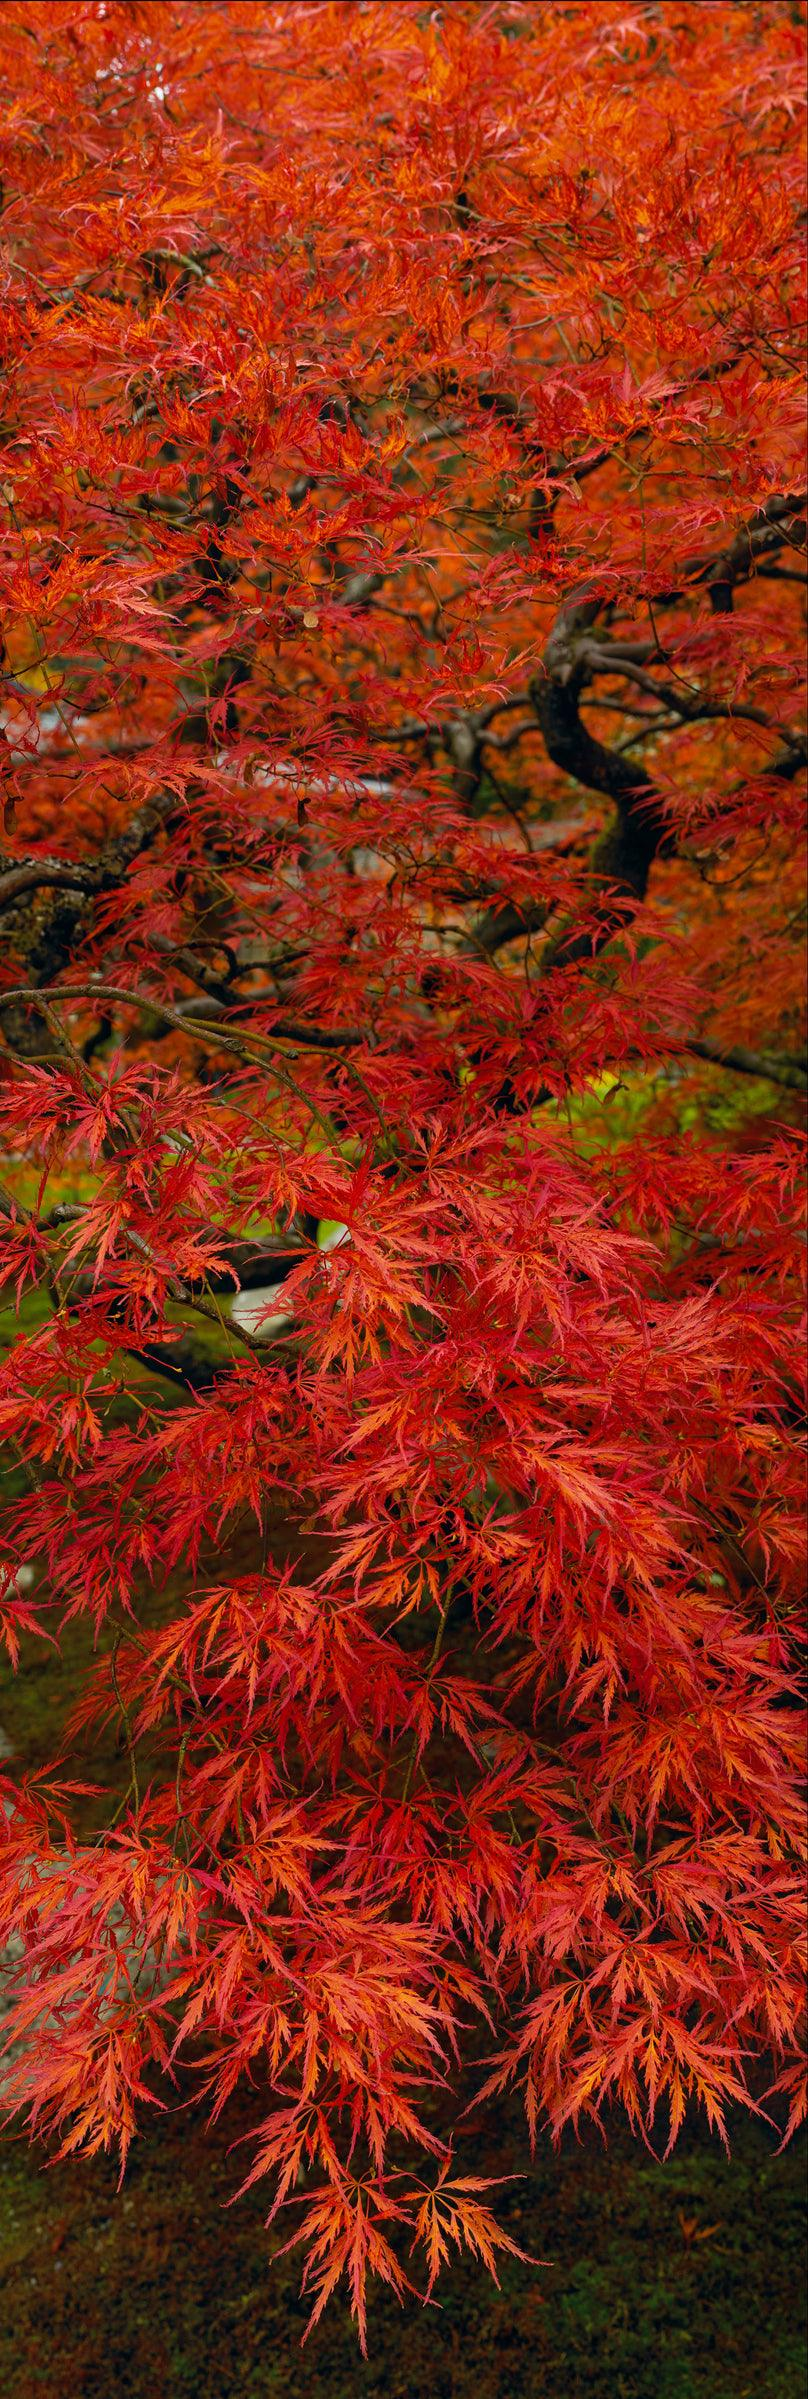 Red leaves and black branches of a Japanese Maple tree reaching over the moss covered ground in Oregon